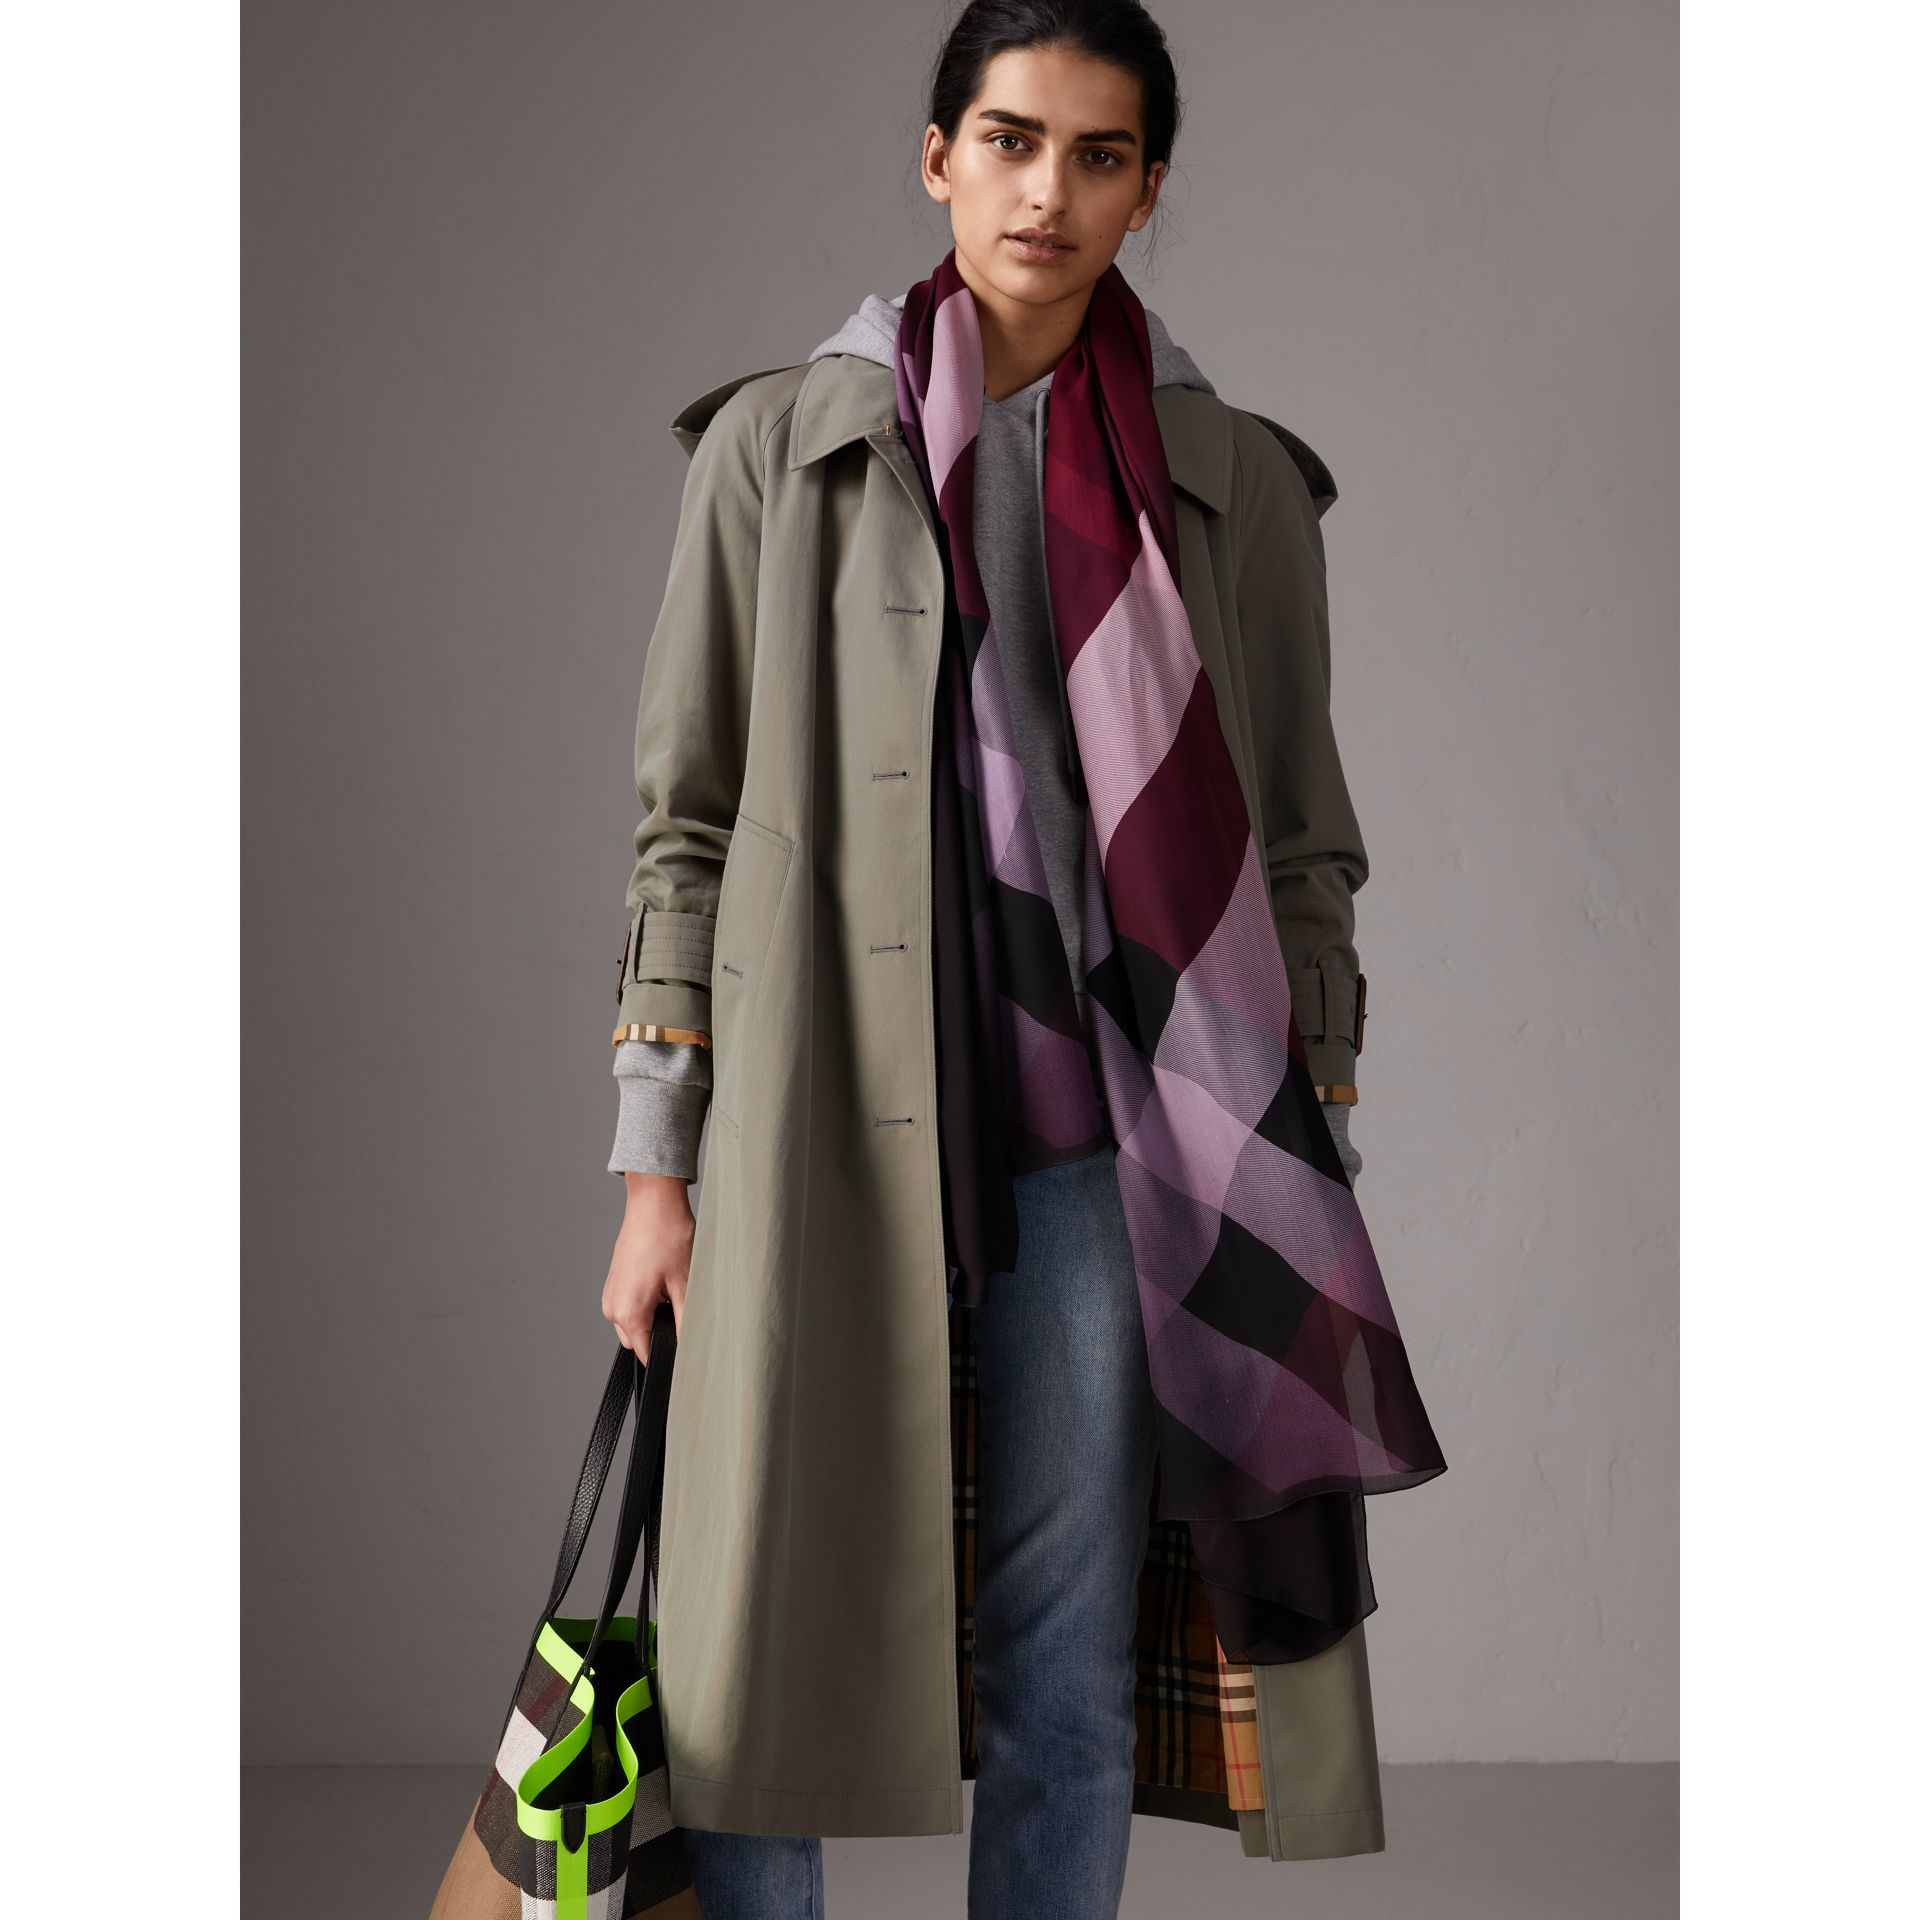 Ombré Washed Check Silk Scarf in Plum - Women | Burberry - gallery image 2